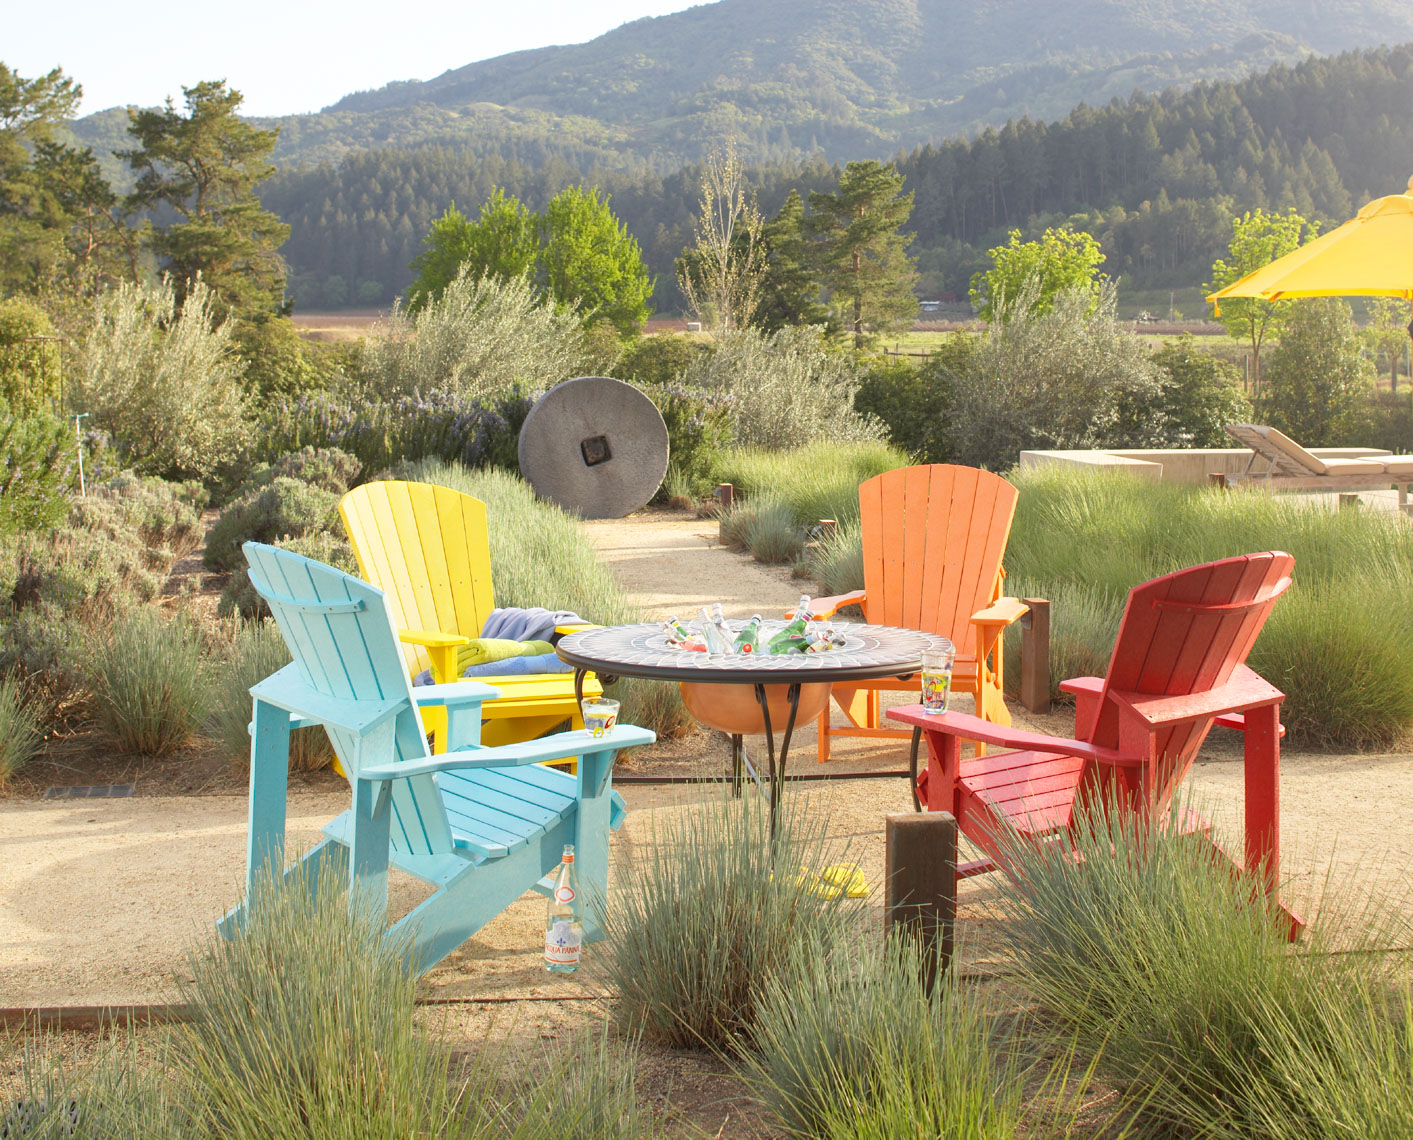 Collection of colorful adirondack chairs around fire bowl in wine country setting San Francisco architectural photographer